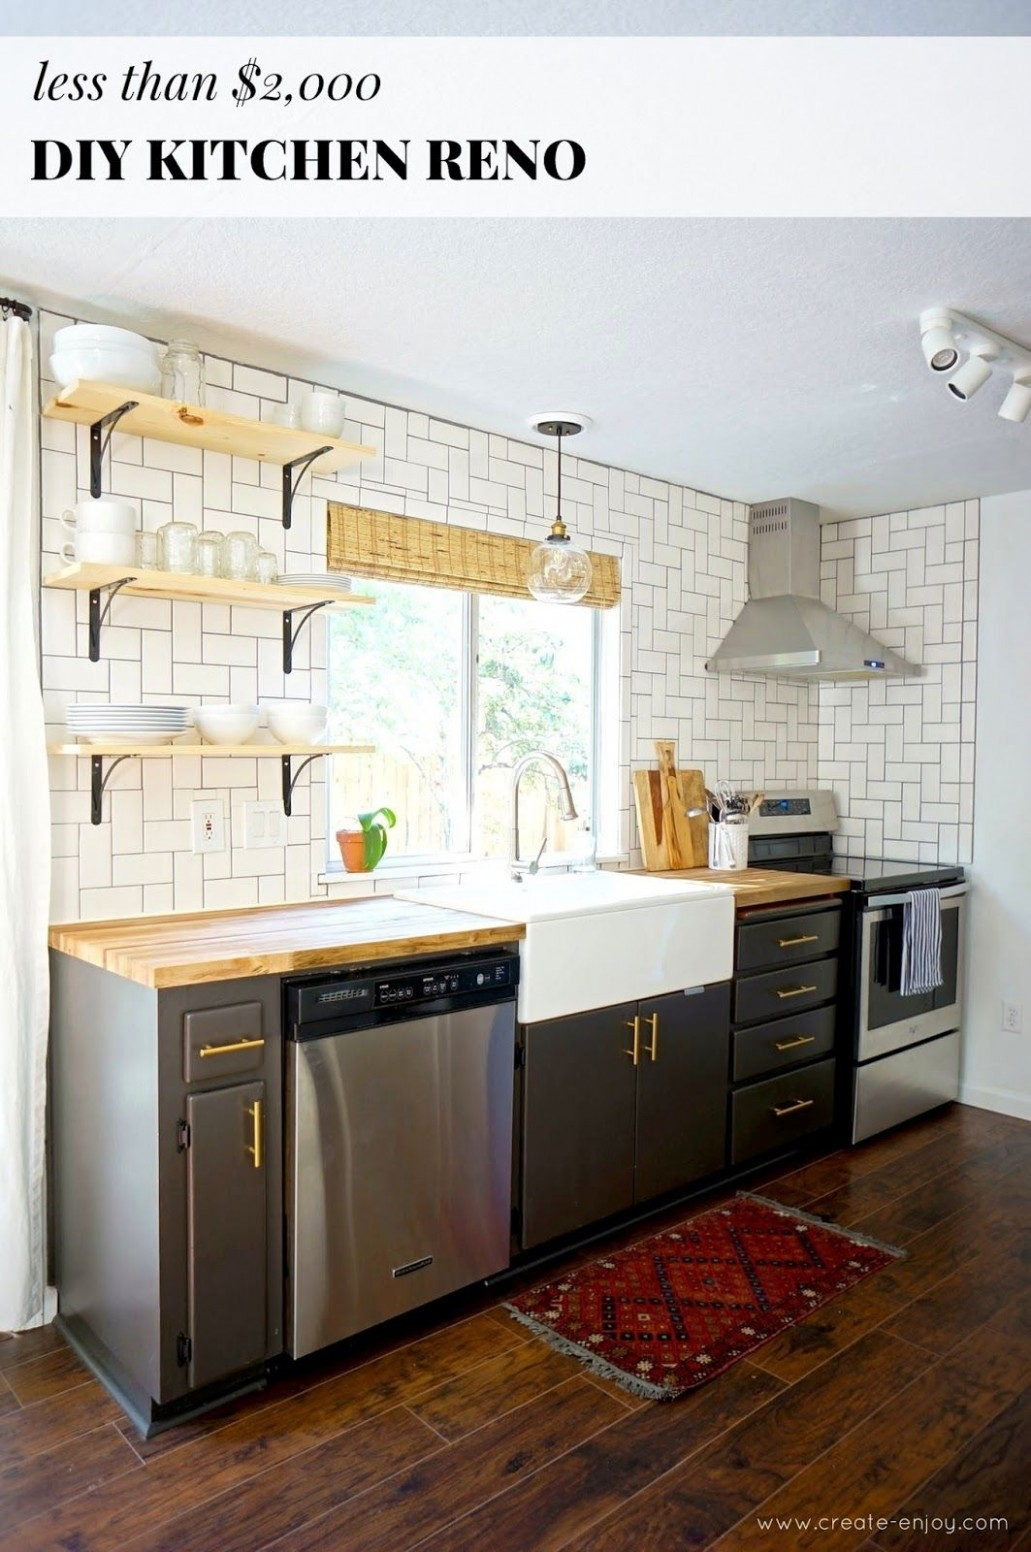 Budget kitchen reno before/after, cost, and DIYs  Galley kitchen  - Diy Galley Kitchen Cabinet Ideas